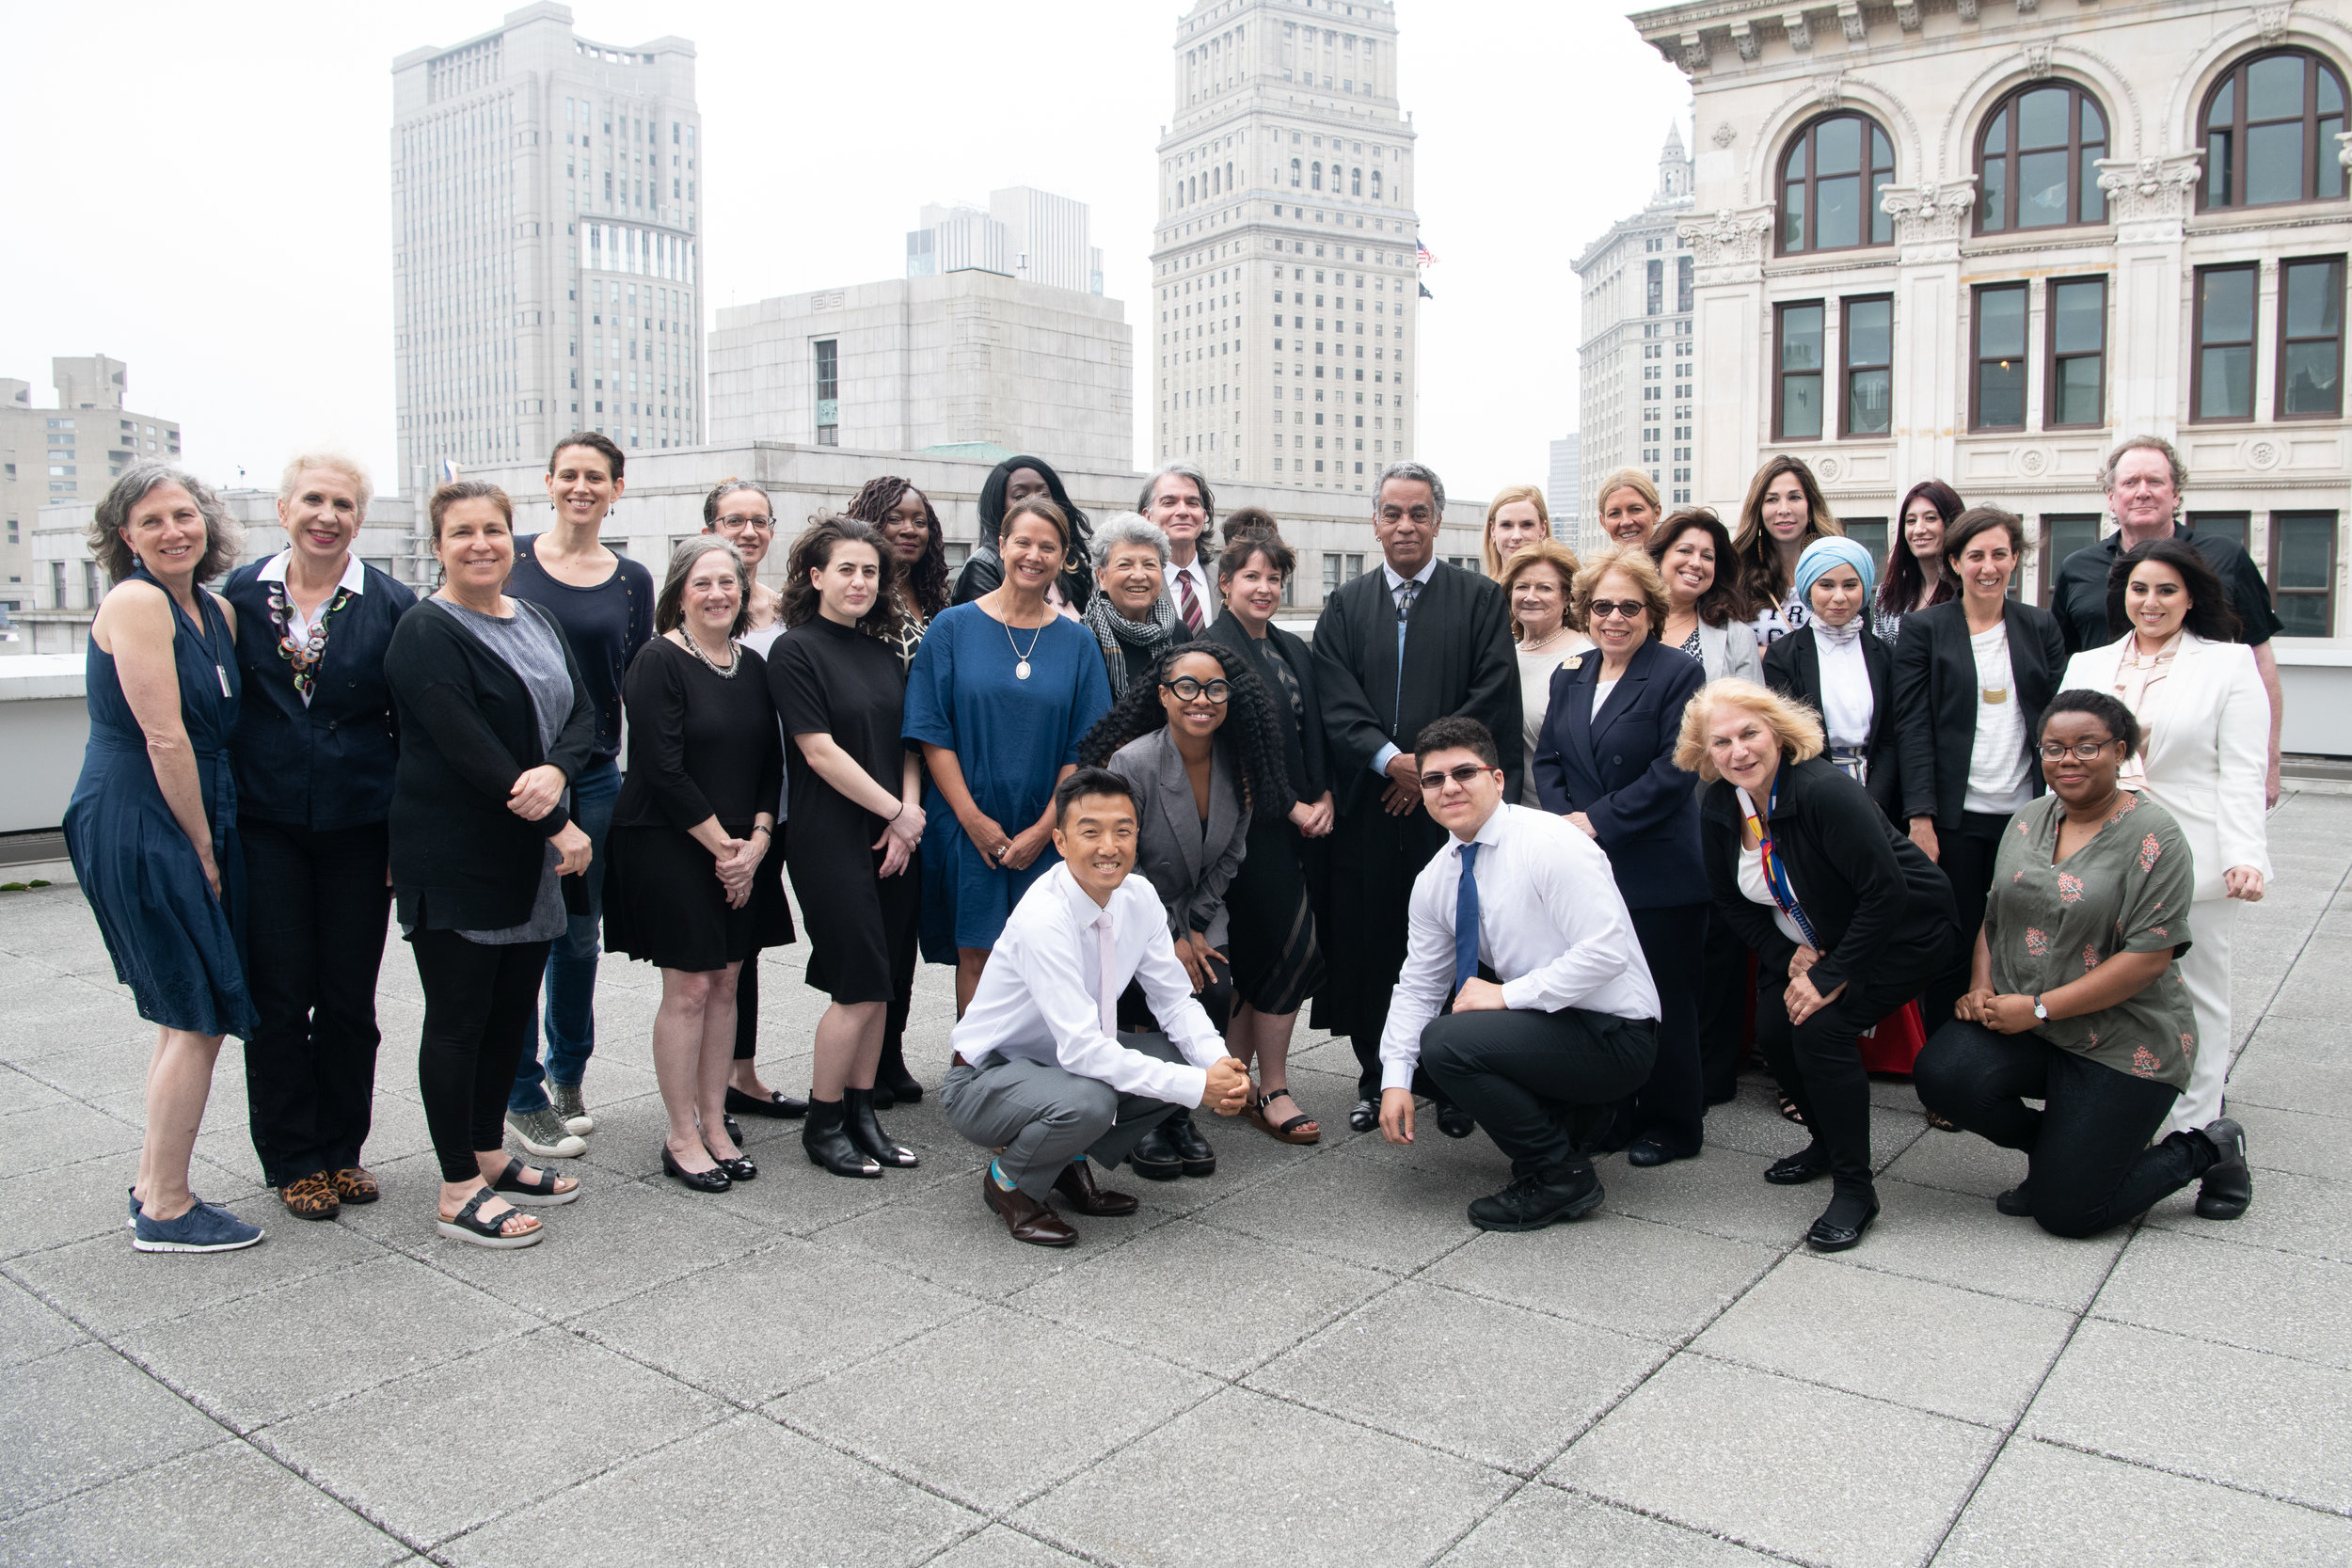 The Honorable Clark V. Richardson with Advocates from the May 2019 Swearing-in Ceremony